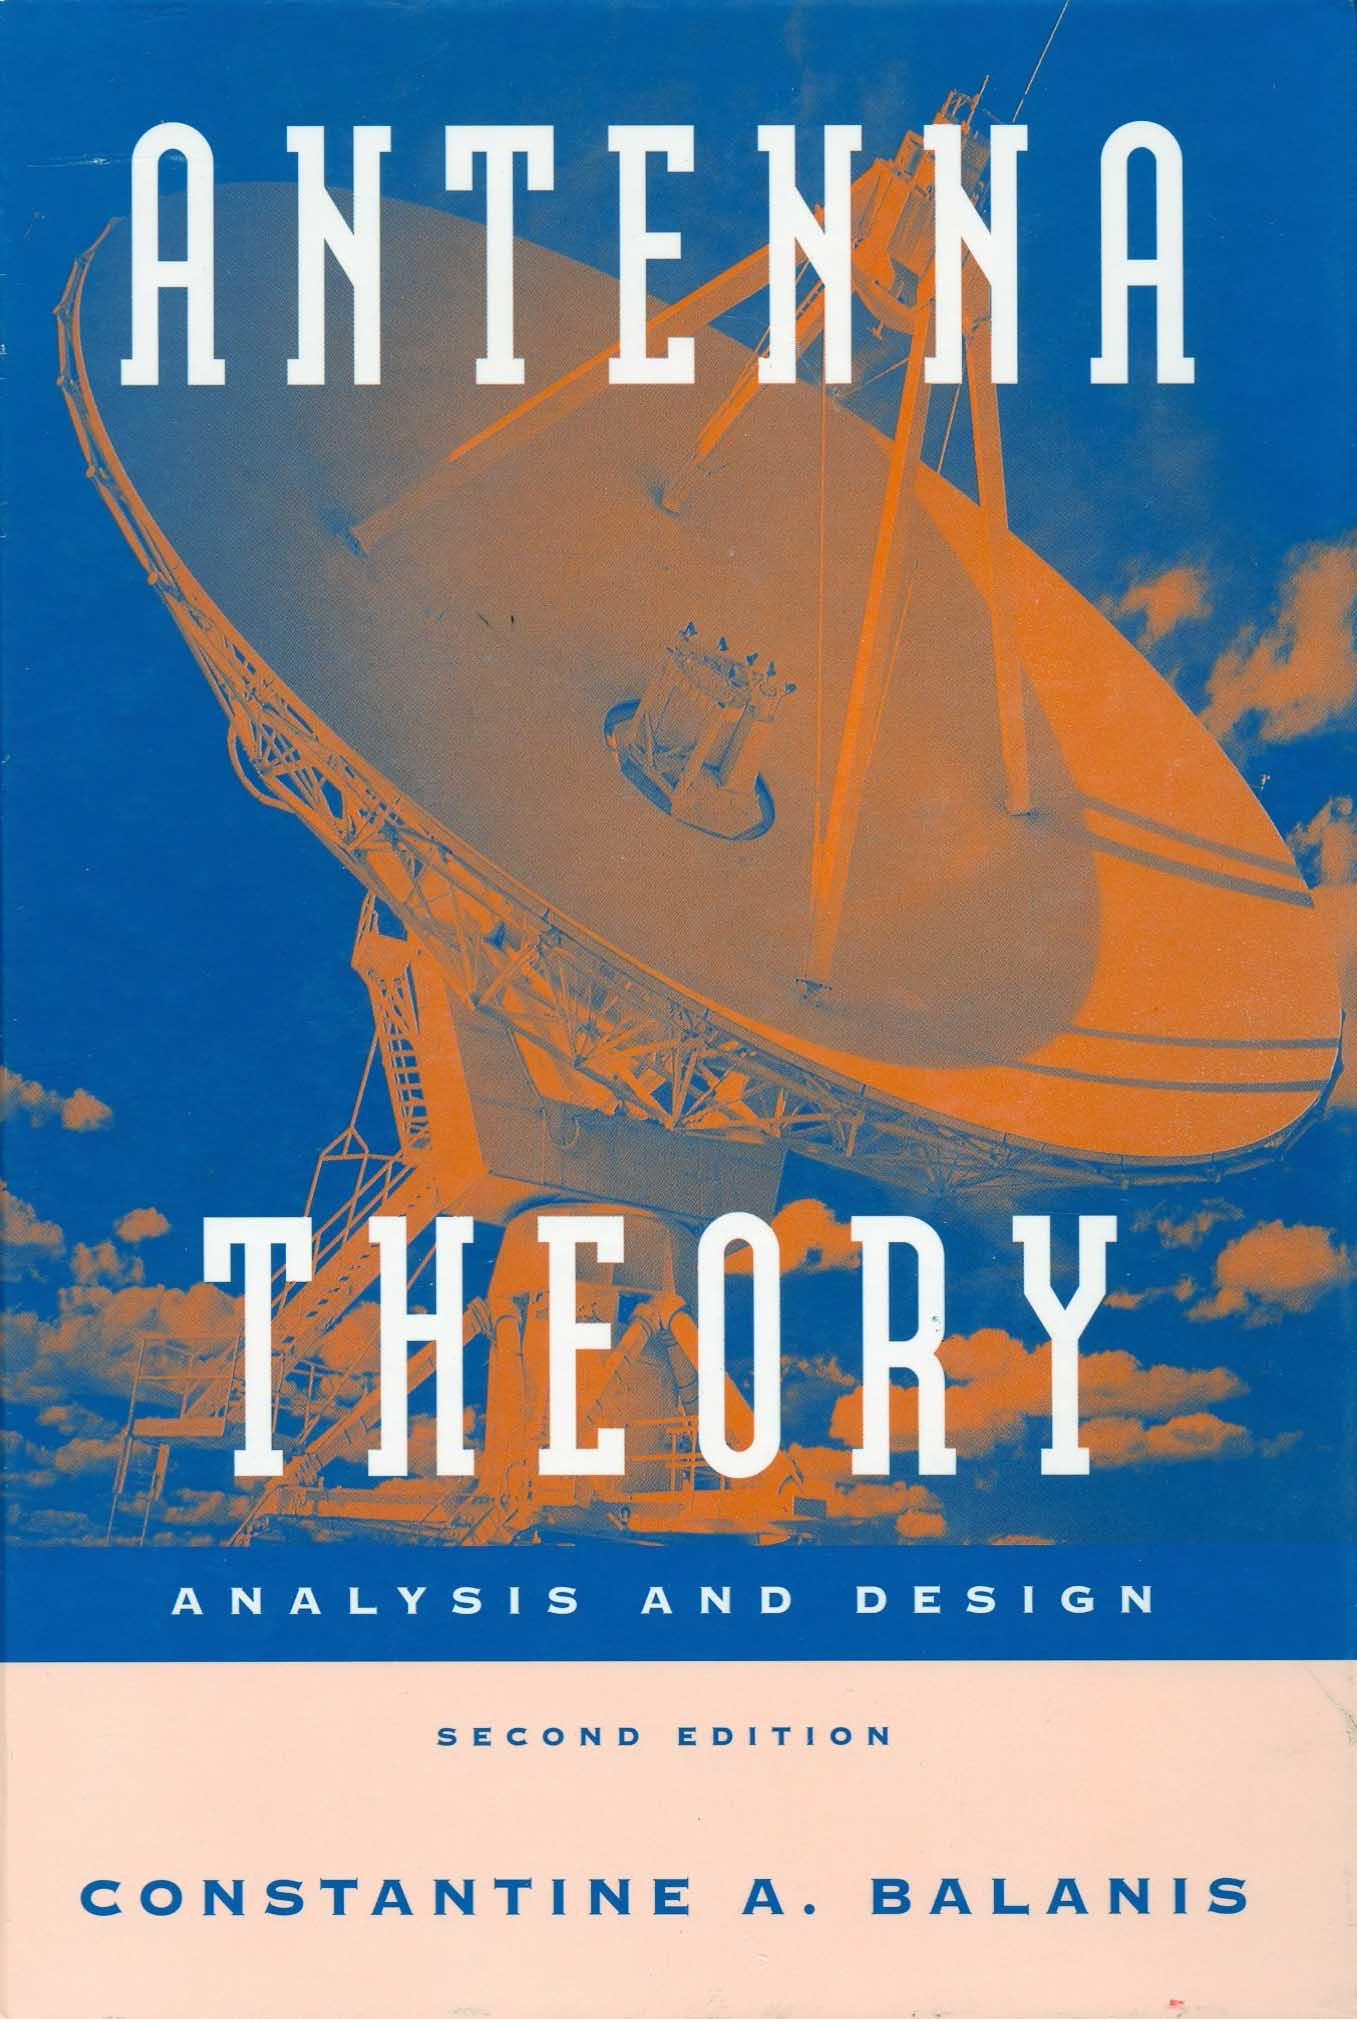 Balanis home publications antenna theory analysis and design 2nd edition john wiley sons 1997 author constantine a balanis fandeluxe Choice Image